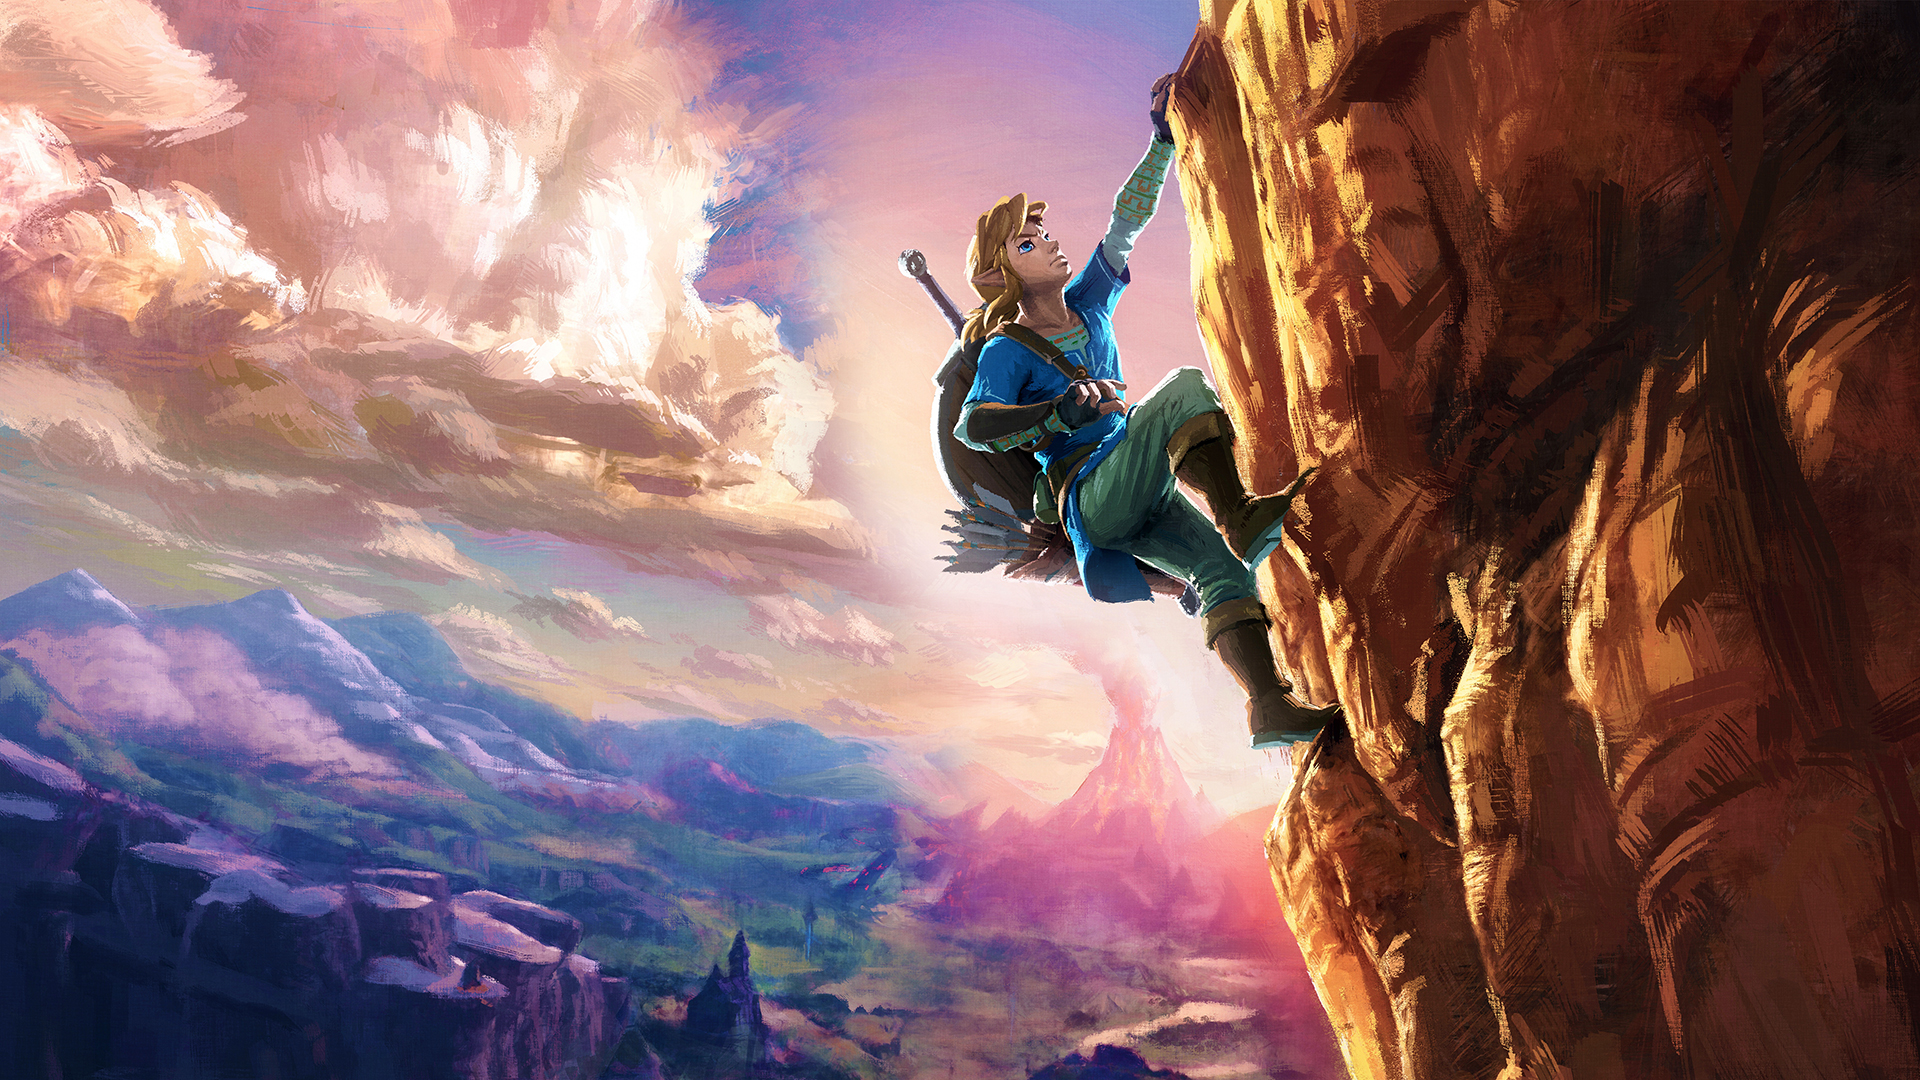 Breath Of The Wild Desktop Wallpaper: Free The Legend Of Zelda Breath Of The Wild Chromebook